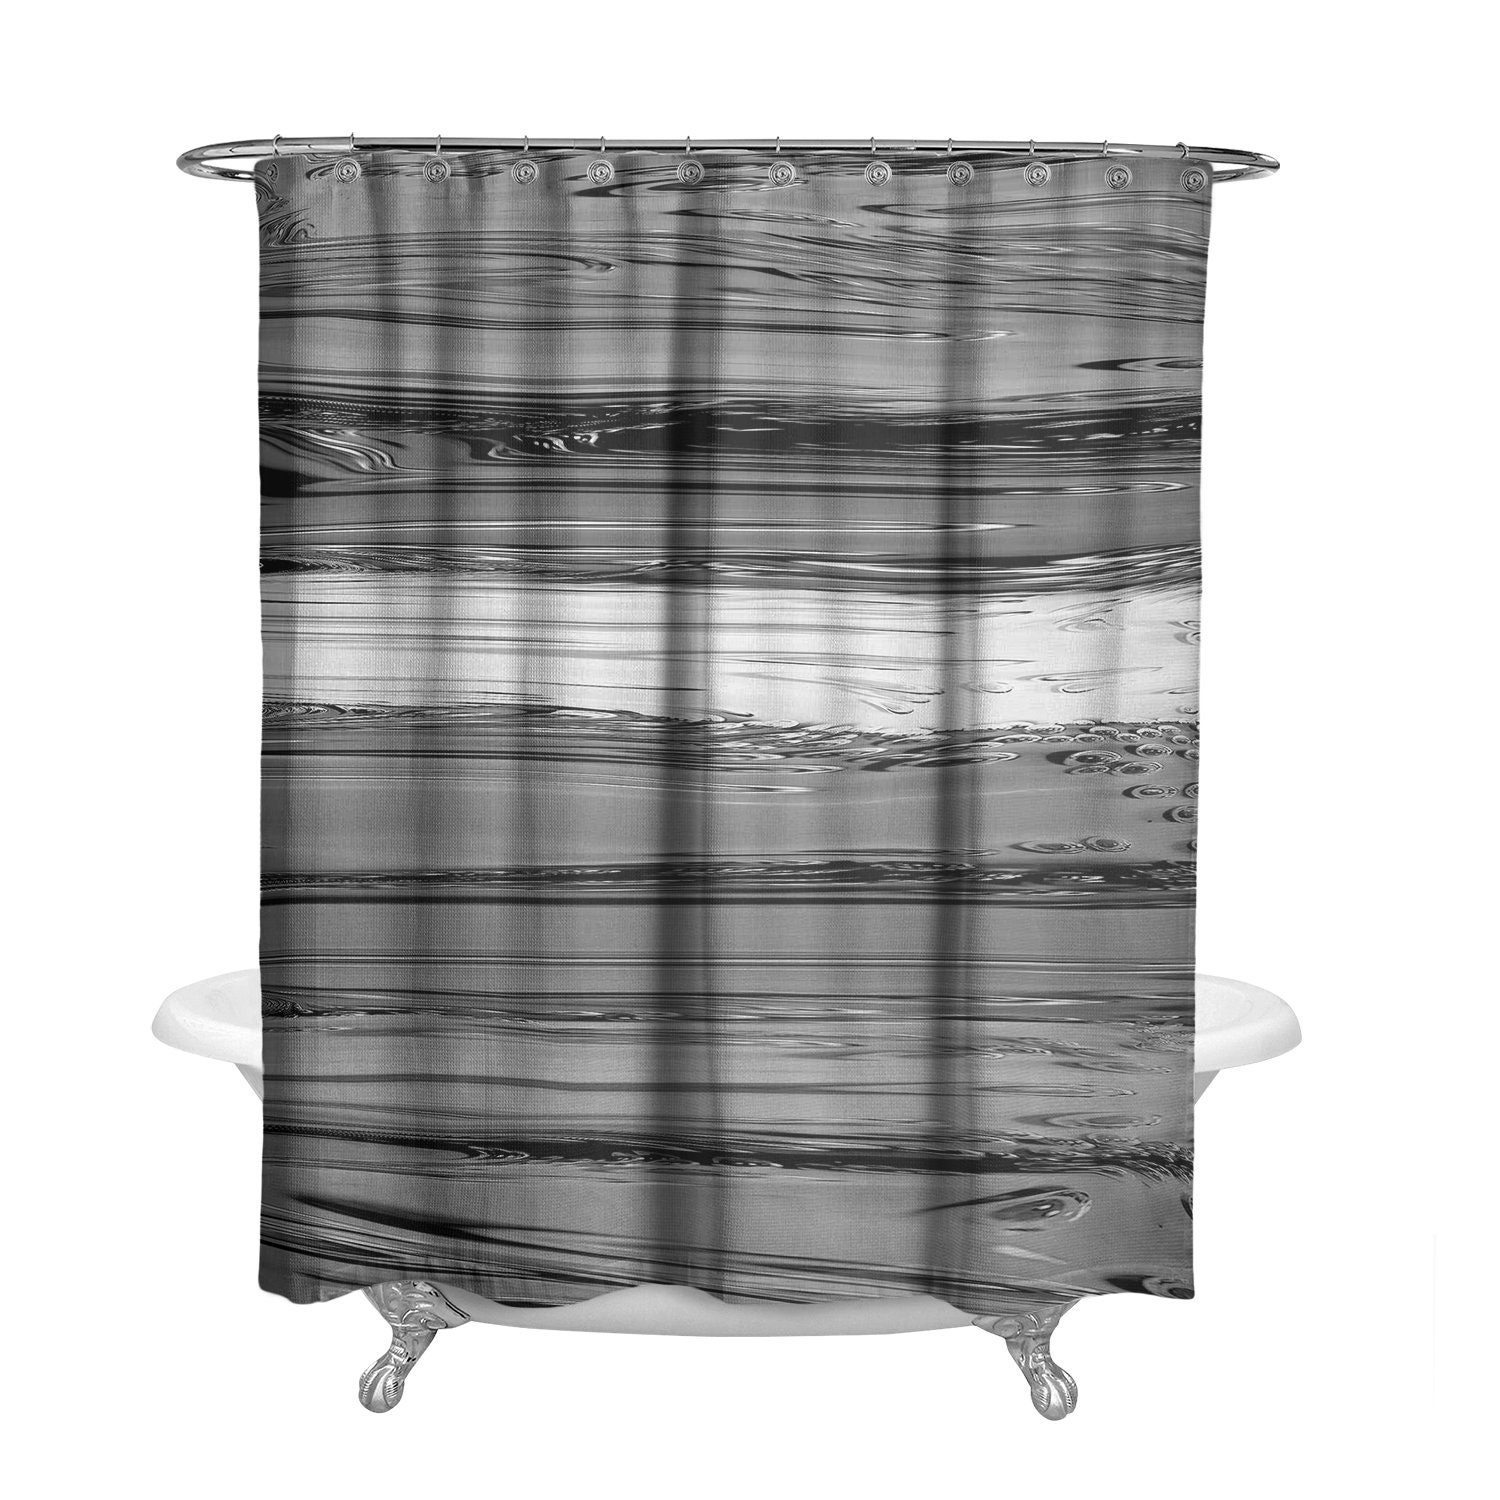 Gray Scale Monochrome Striped Shower Curtain W Bathmat Set Options Black And White Bath Curtain Striped Paint Design